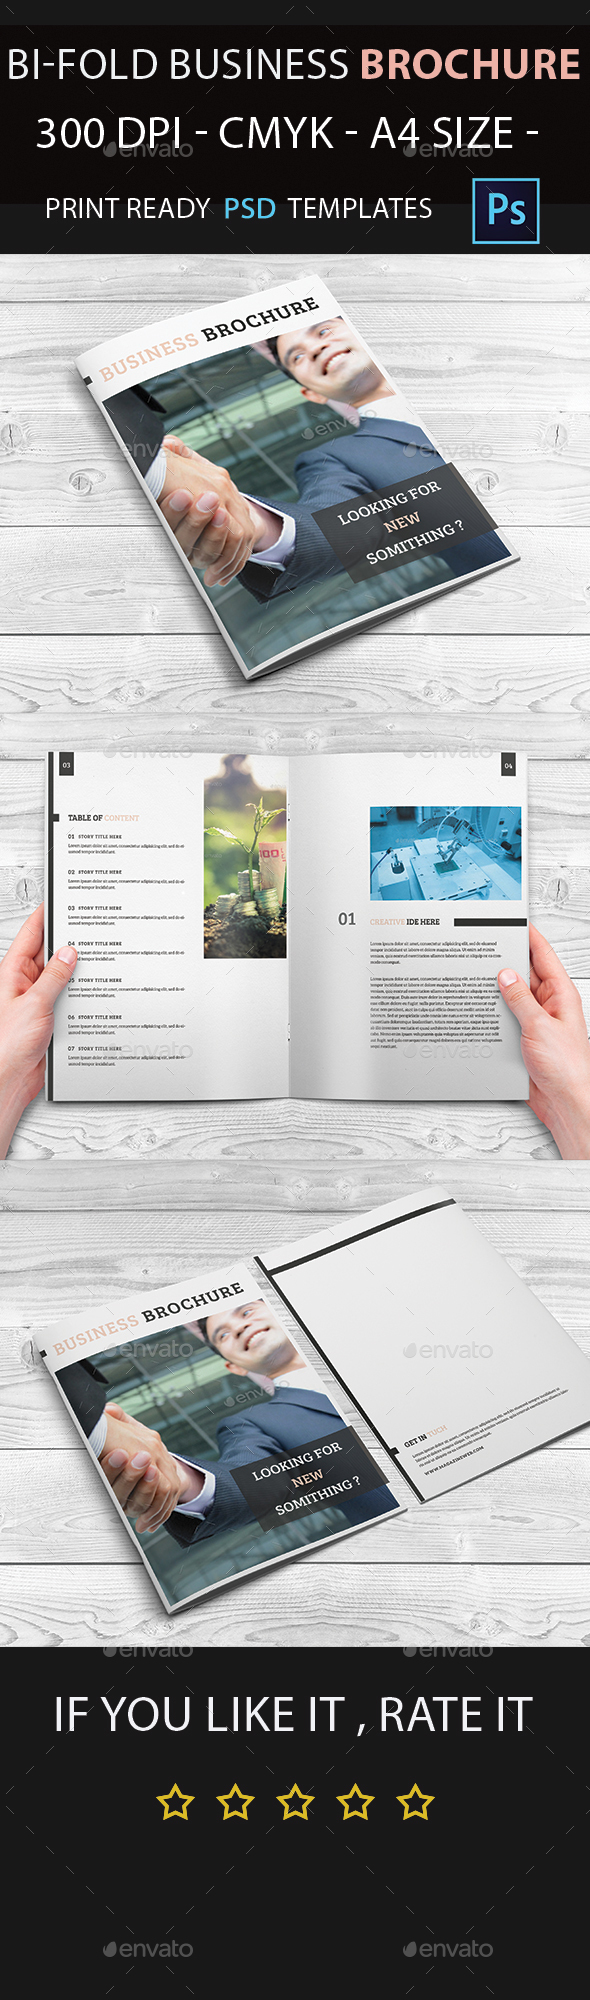 Corporate Business Bifold Brochure Template - Corporate Brochures